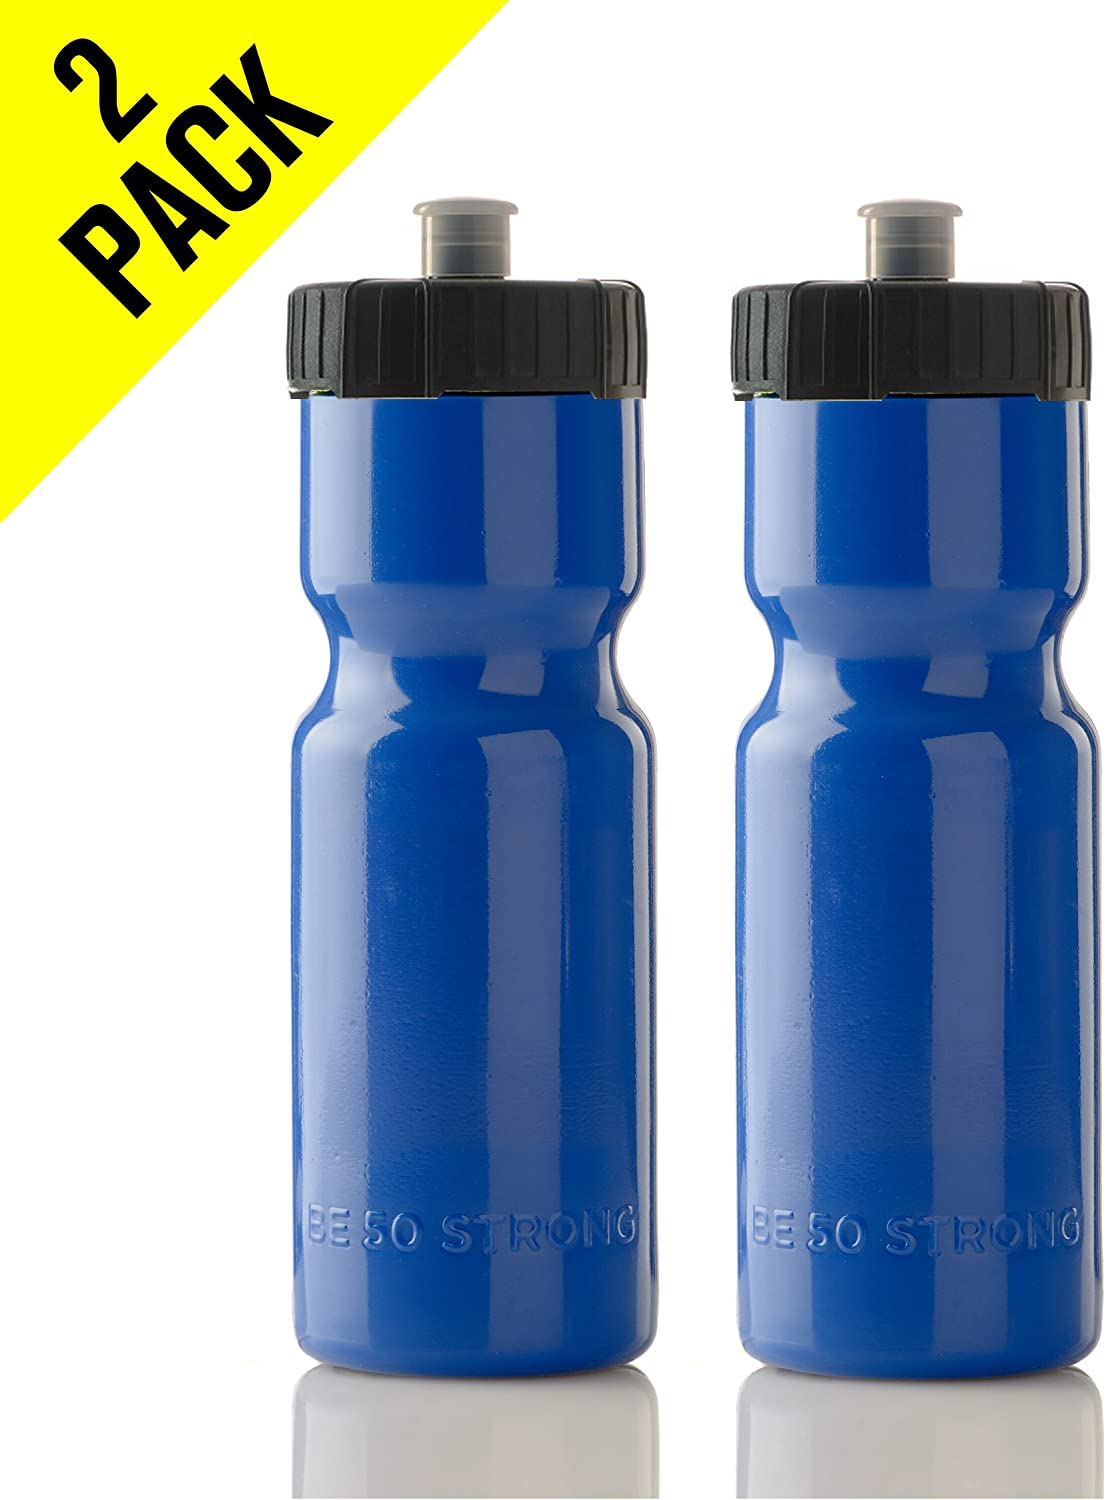 Top Rack Dishwasher Safe Great for Adults /& Kids 22 oz 50 Strong Sports Squeeze Water Bottle 2 Pack Bottles Fit in Bike Cages USA Made BPA Free Easy Open Push//Pull Cap